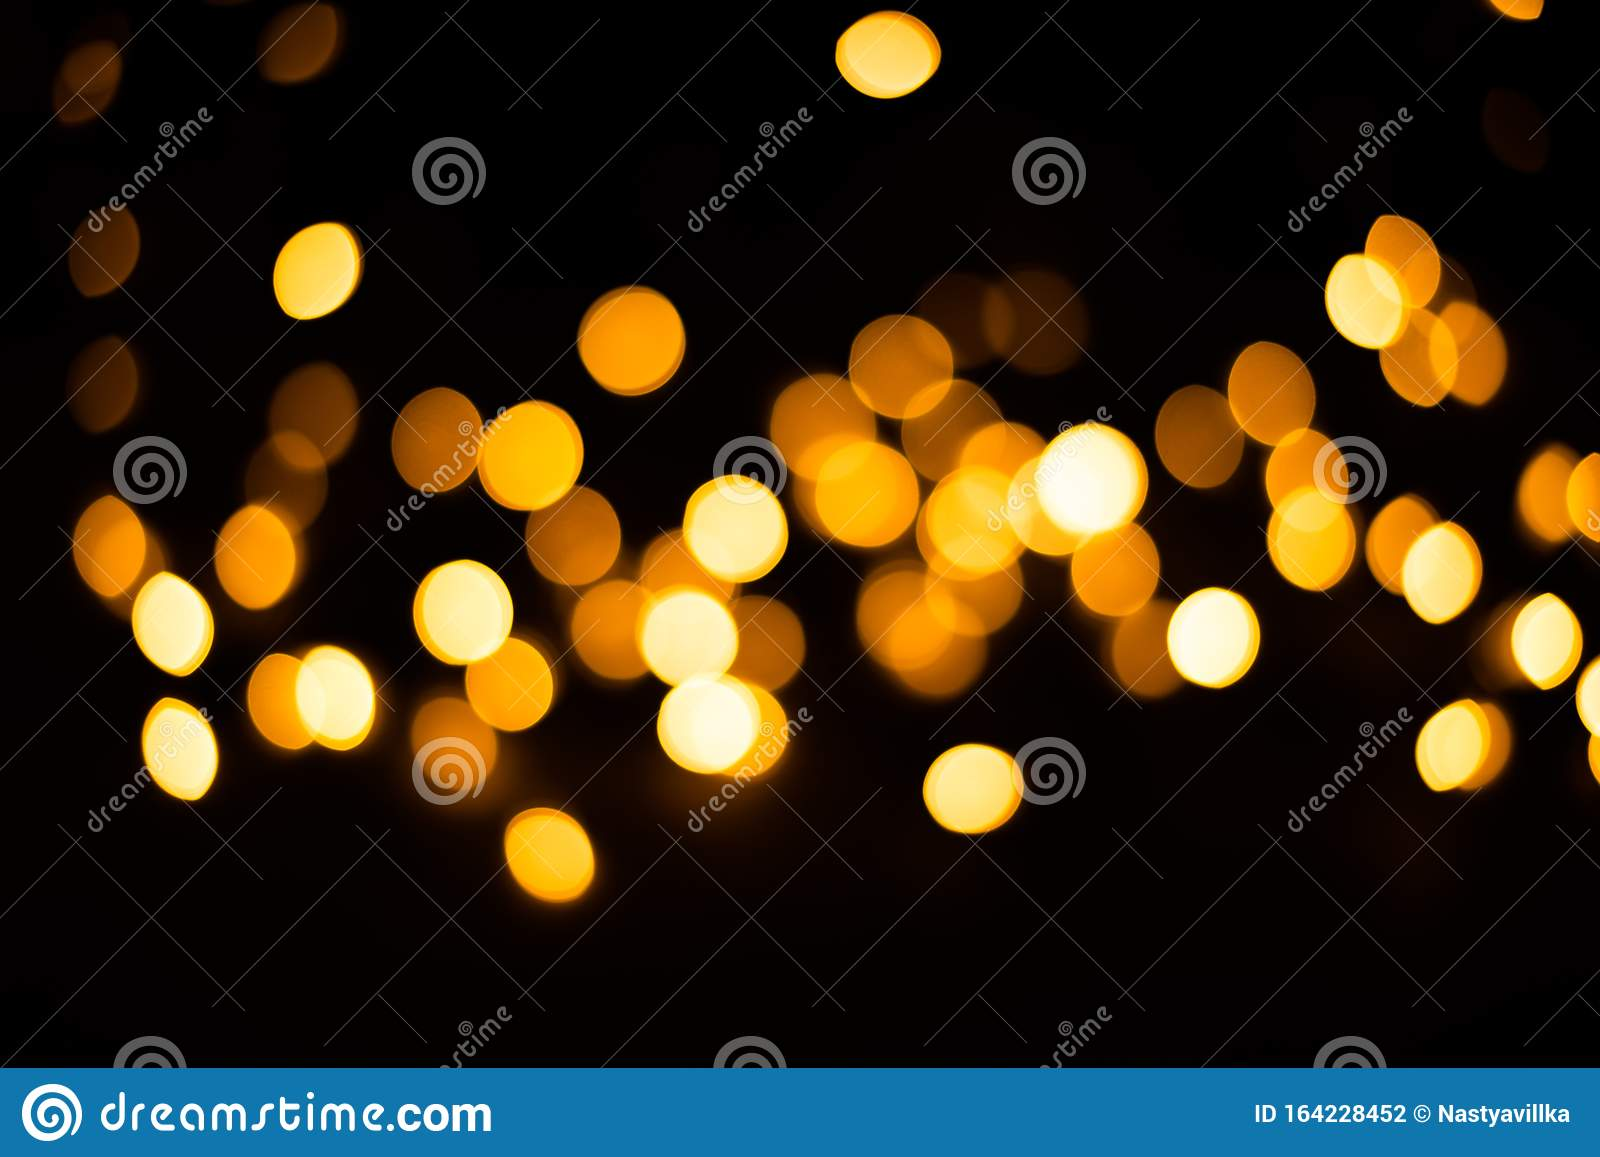 blurred background christmas lights black yellow light bulbs festive 164228452